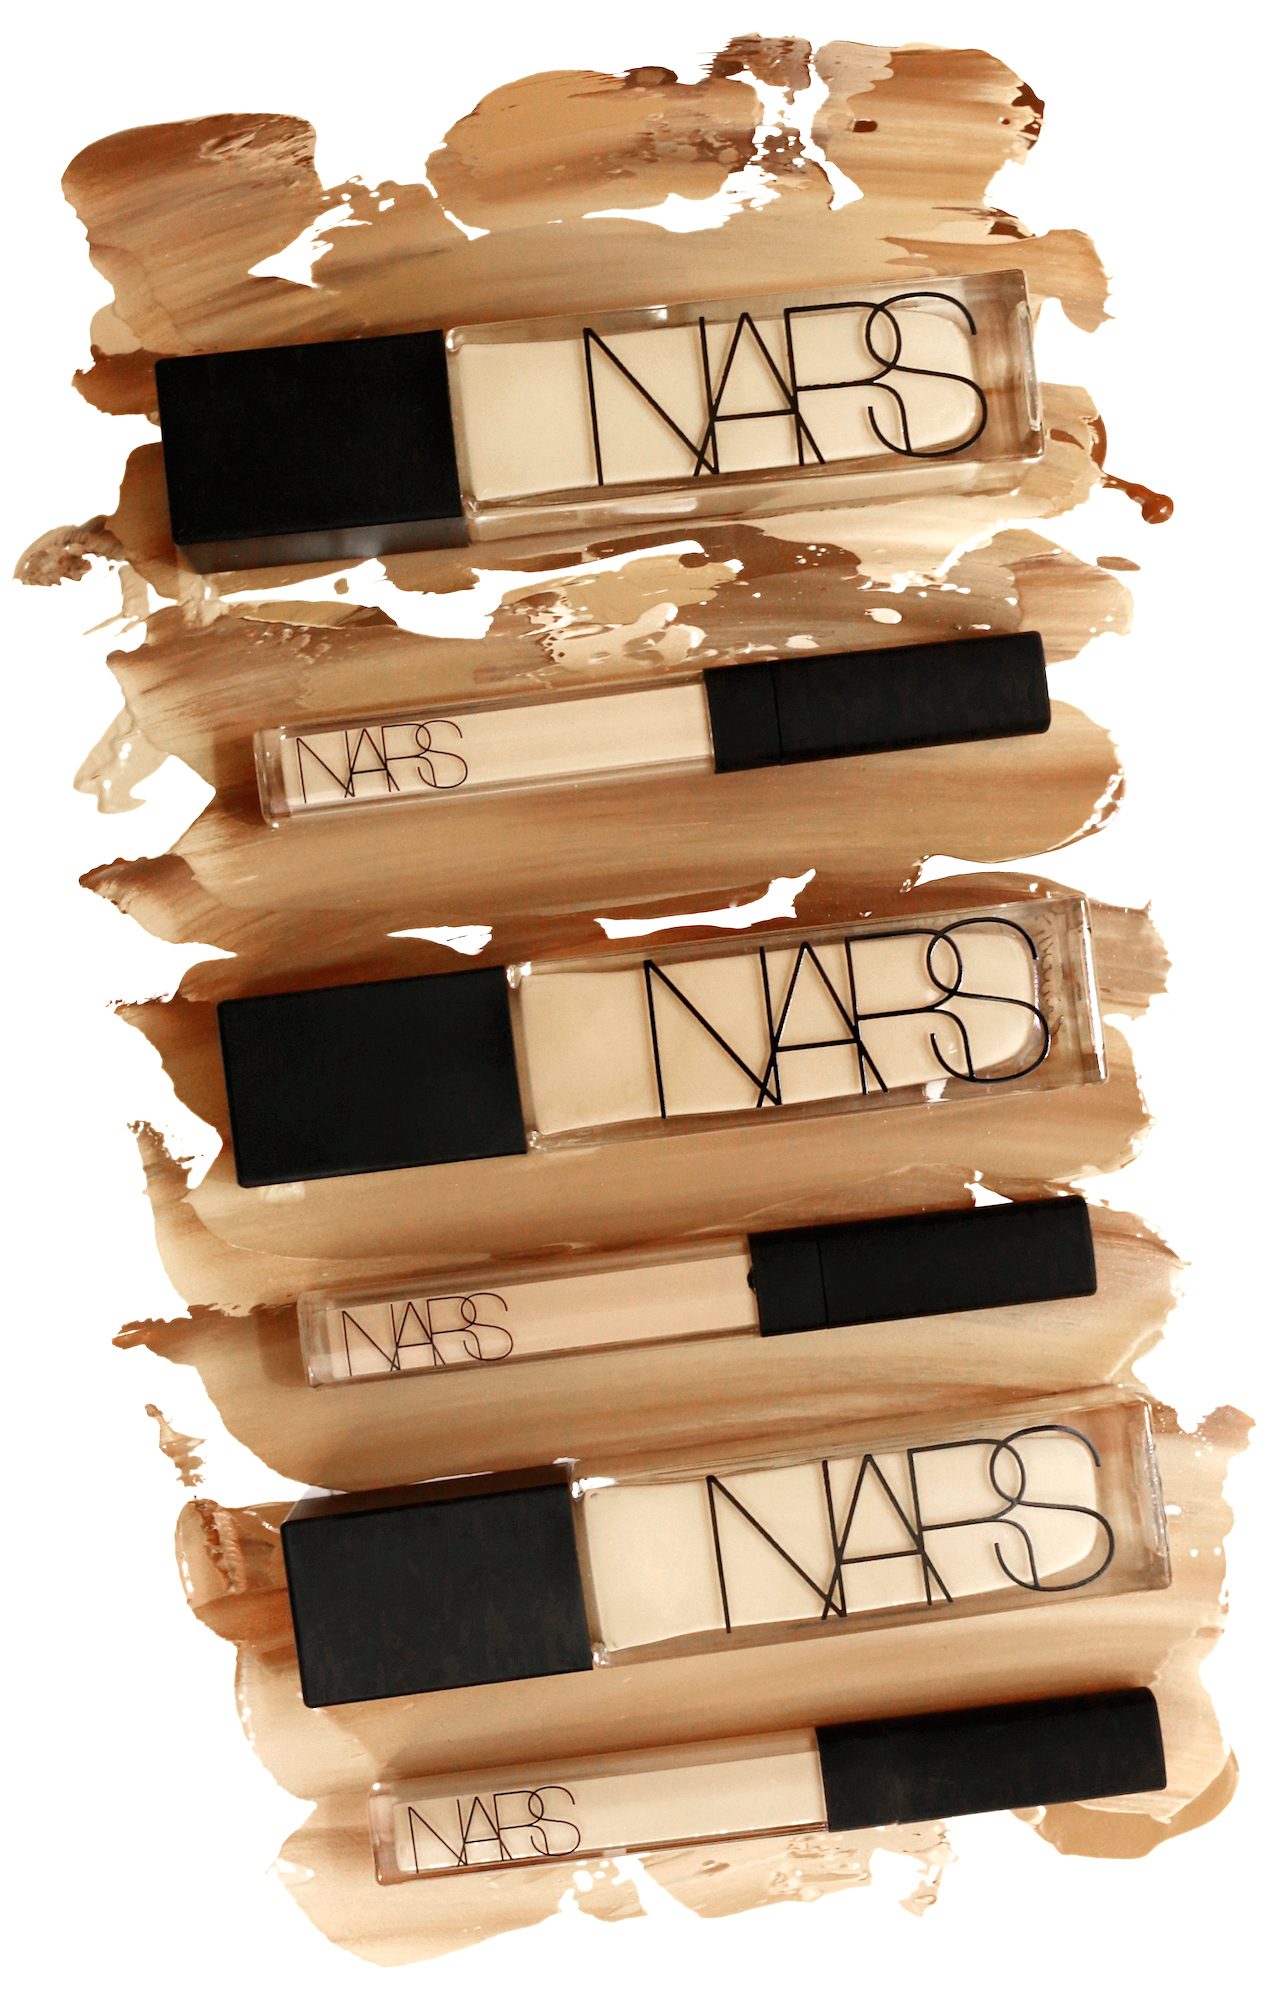 NARS Radiant Longwear Foundation Review and swatches - full collection- woahstyle.com_7636.jpg